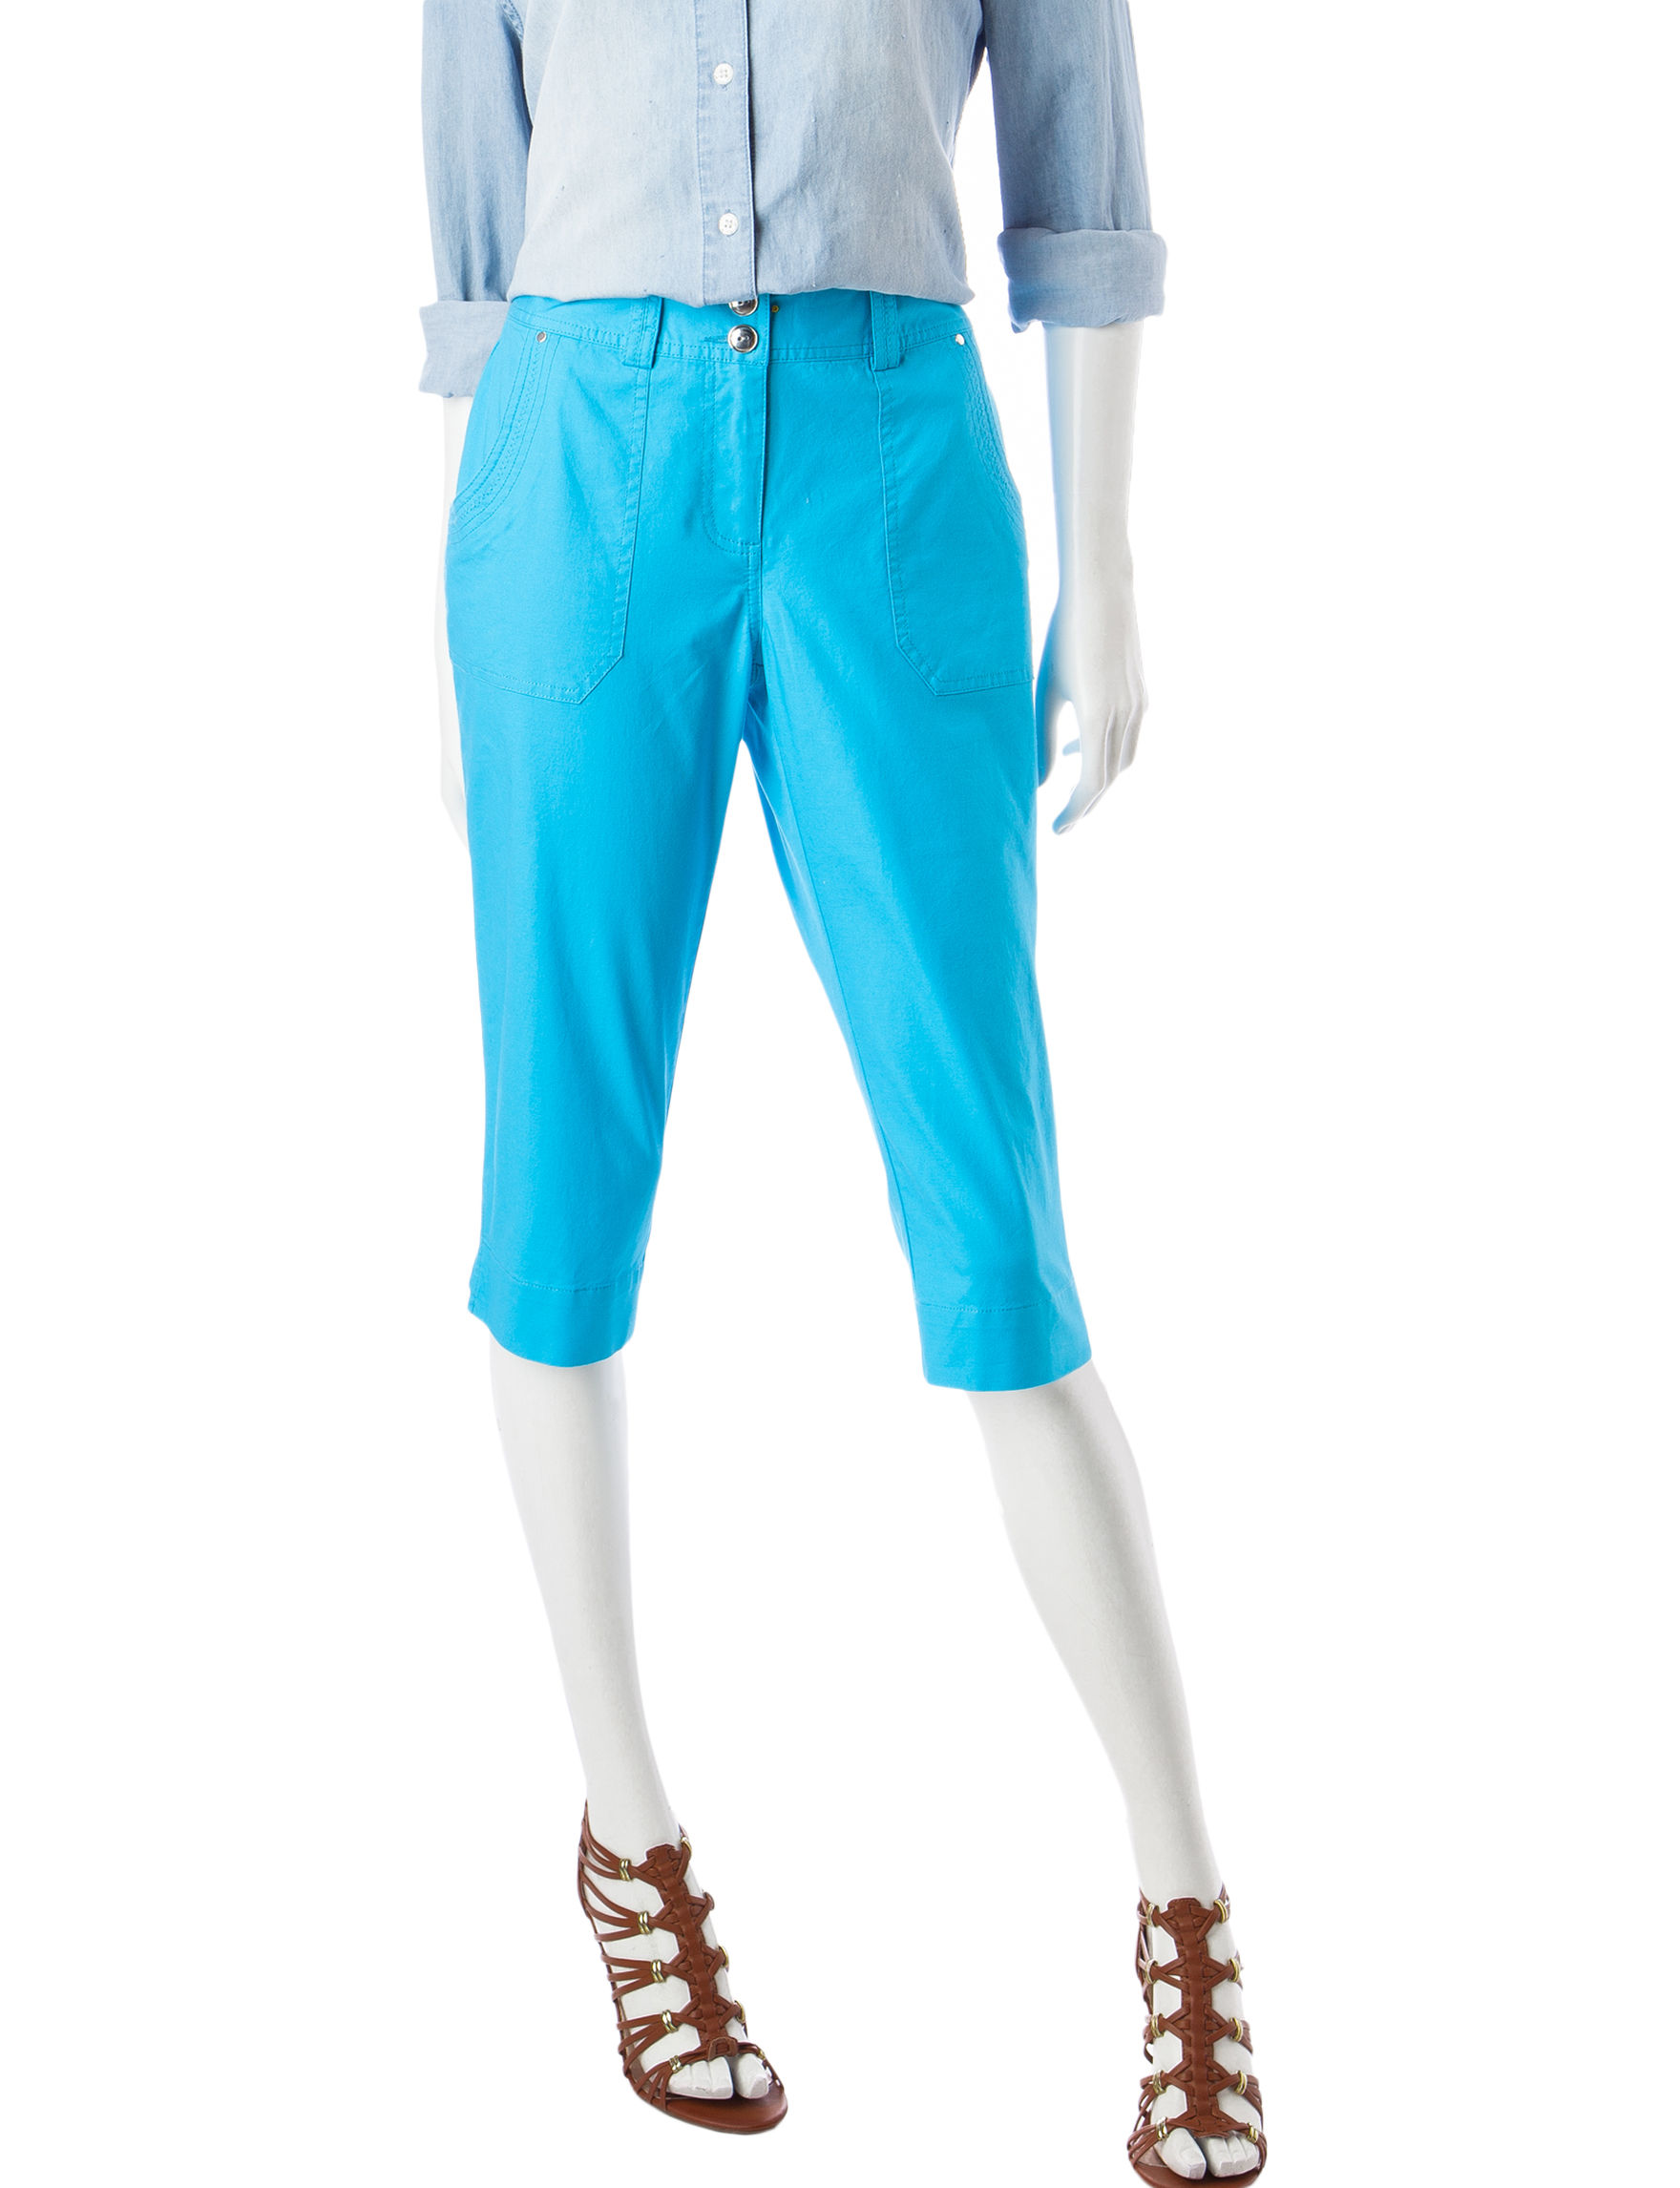 Hearts of Palm Turquoise Capris & Crops